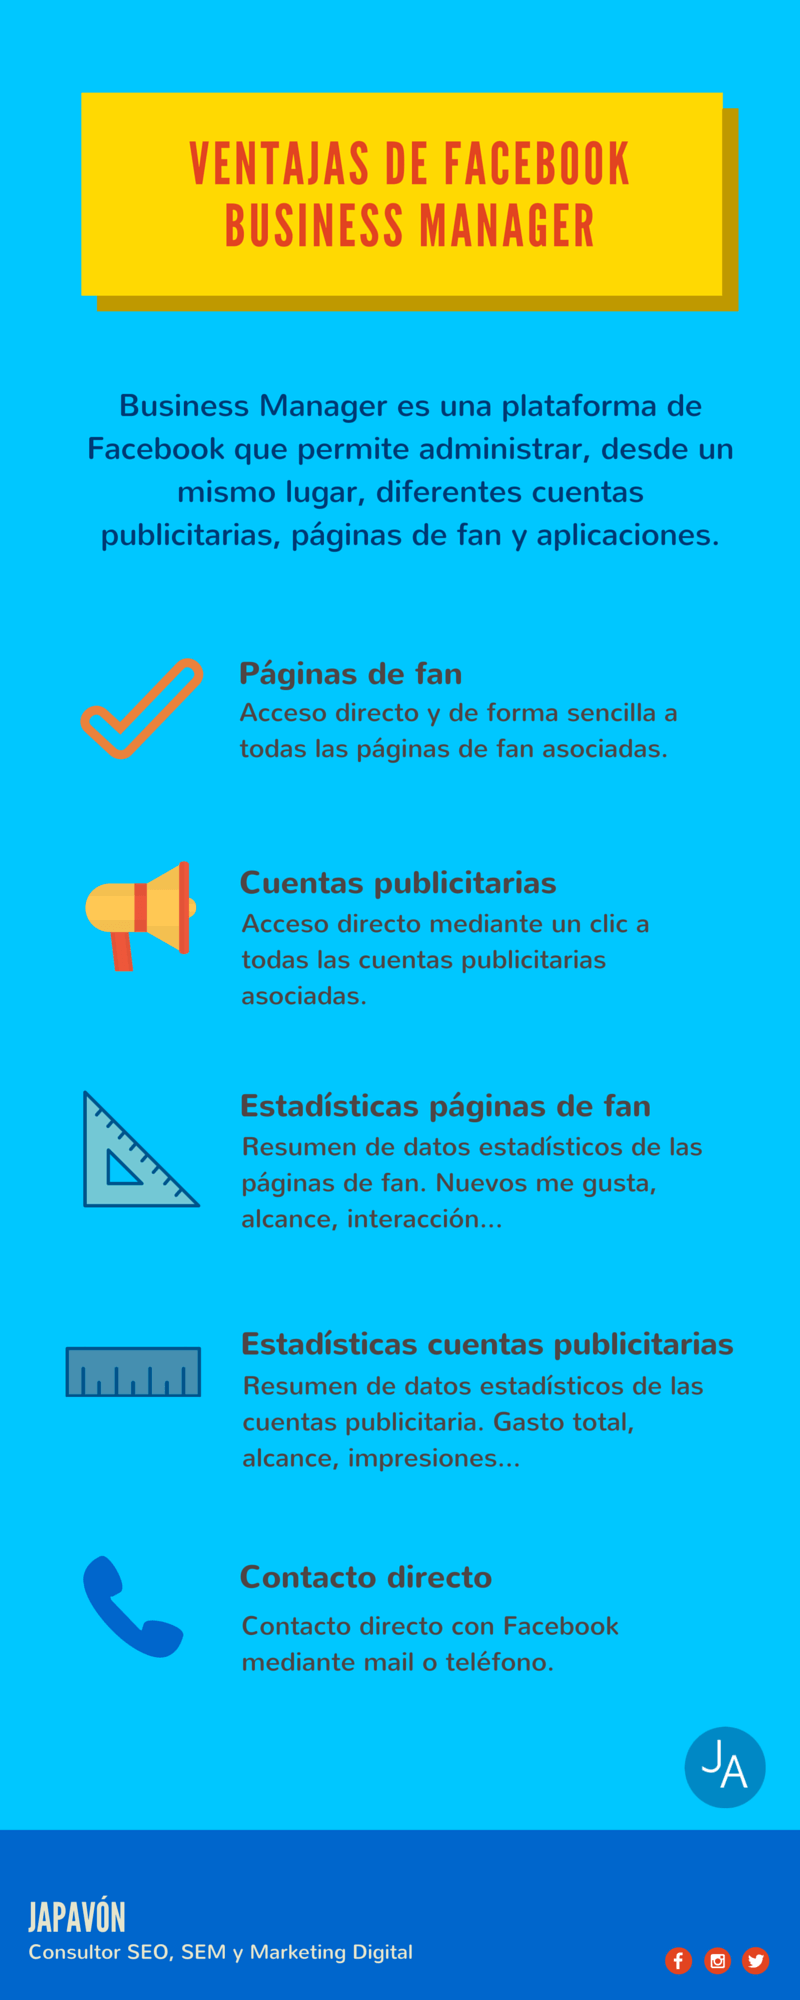 Ventajas de Facebook Business Manager